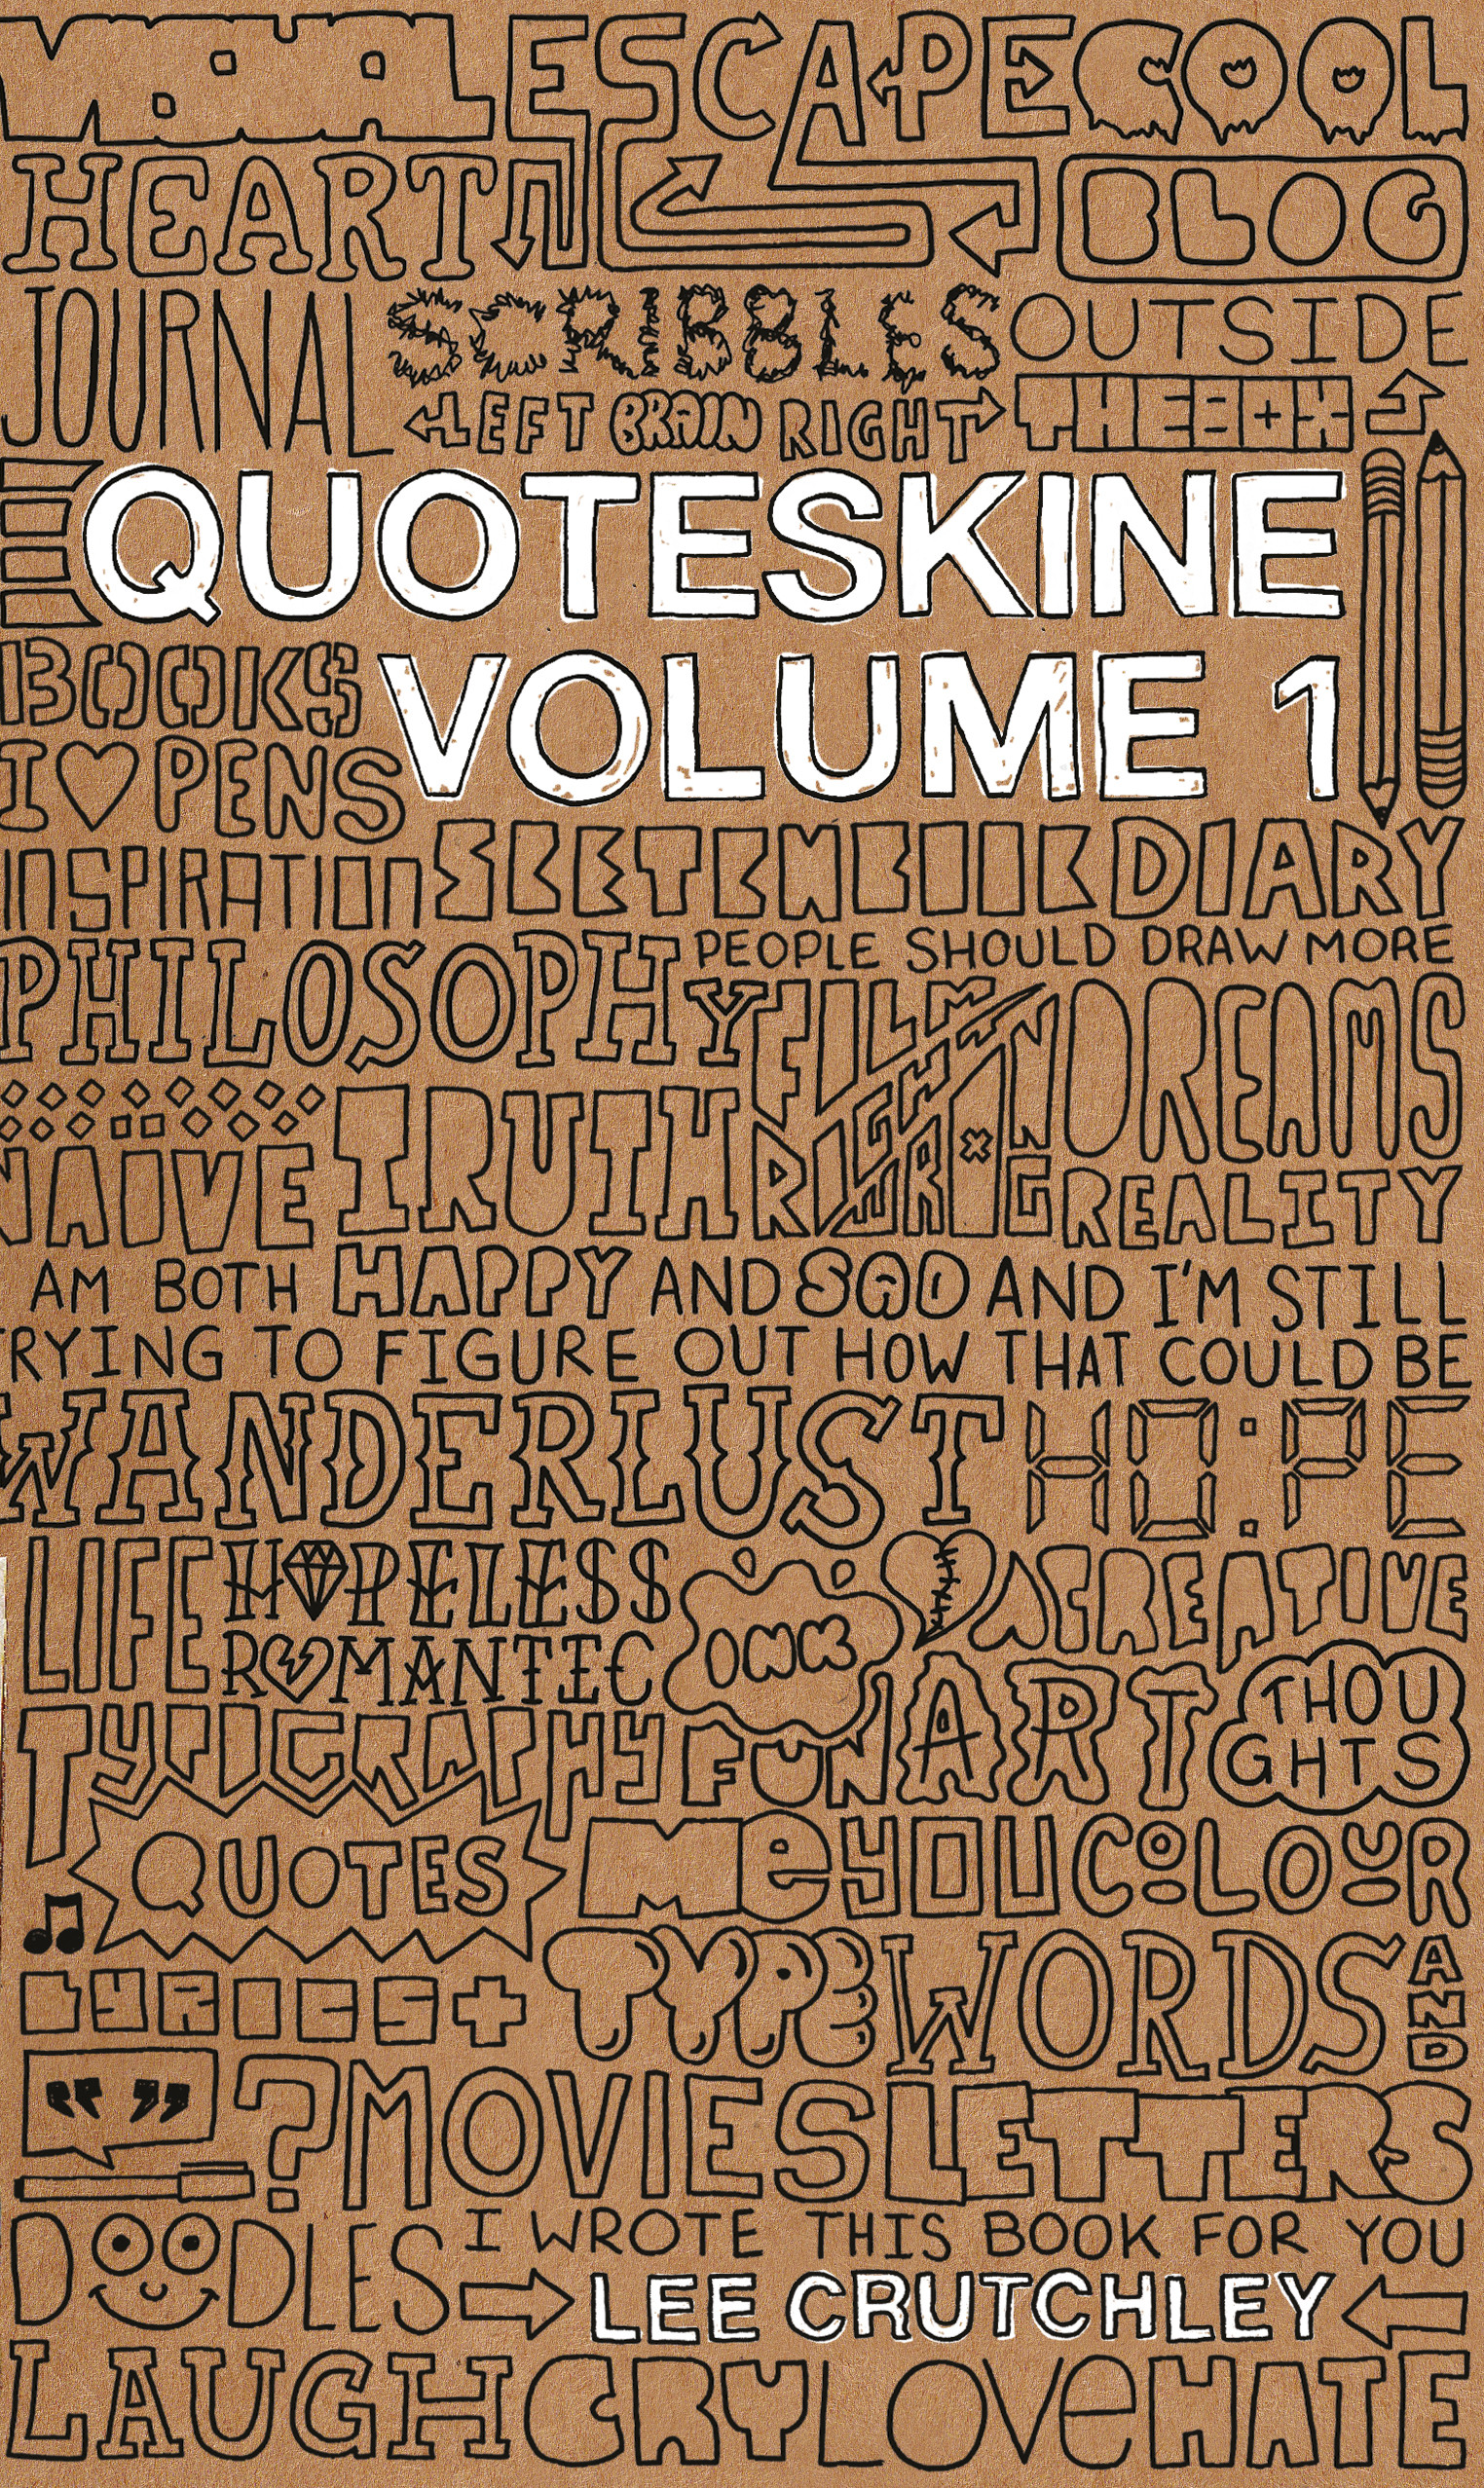 Quoteskine Volume 1